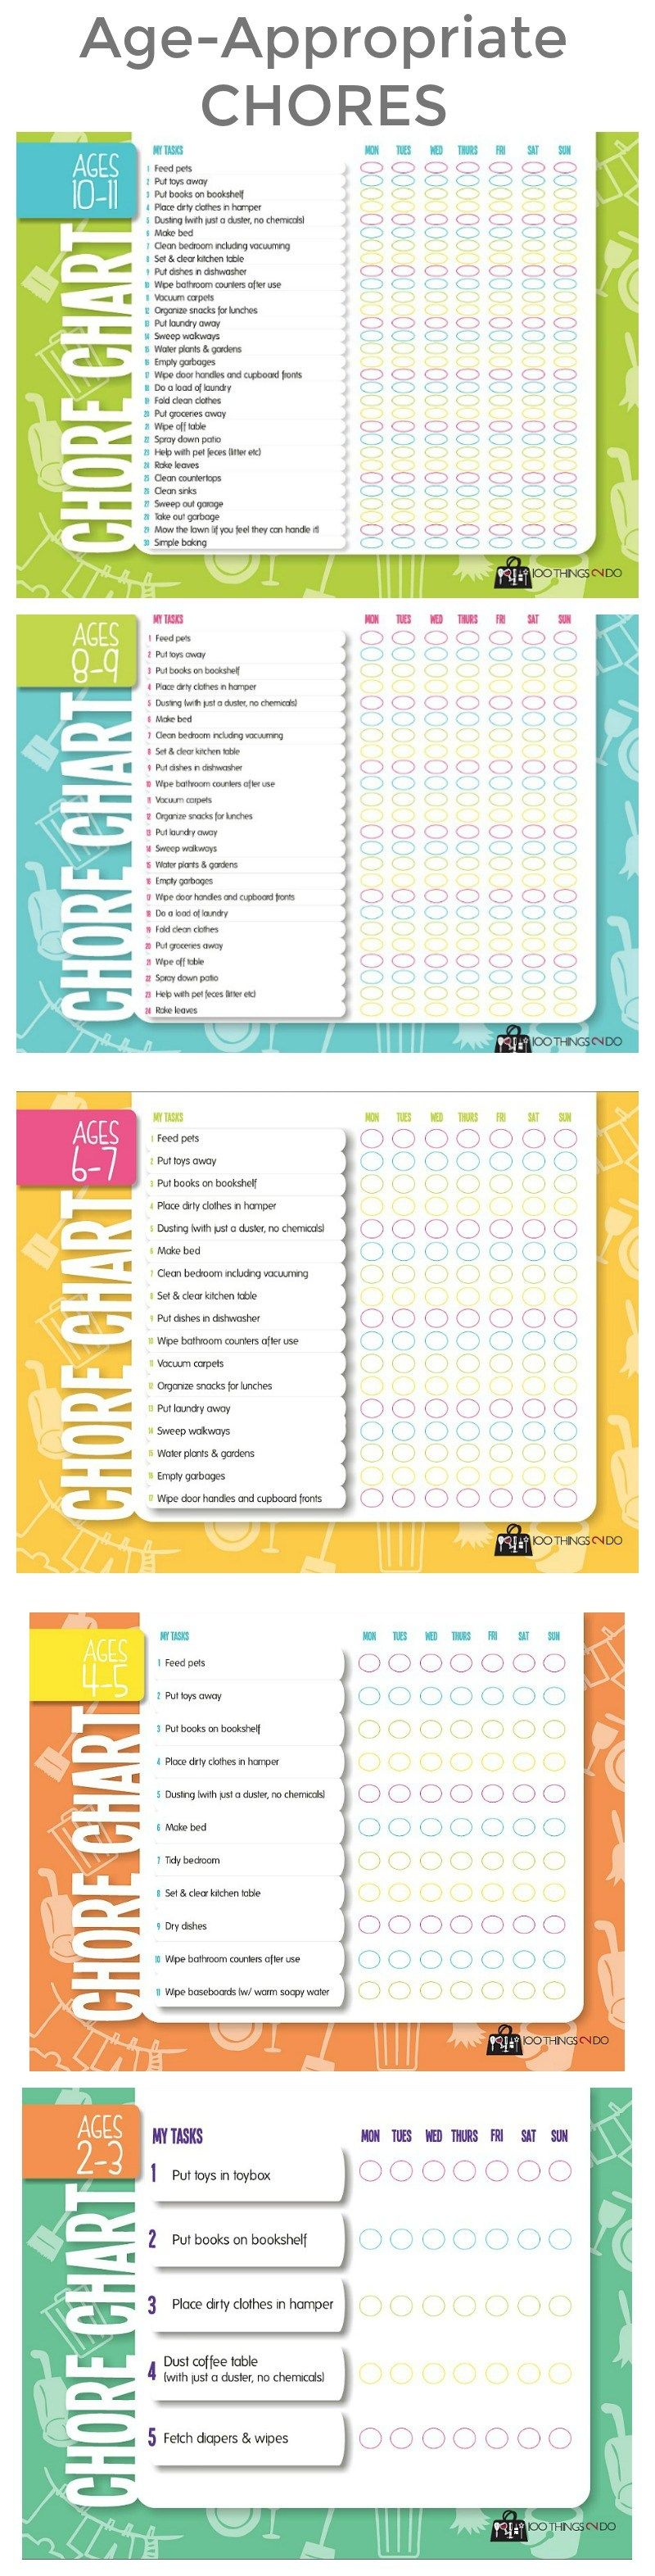 Age Appropriate Chores for Kids Age appropriate chores